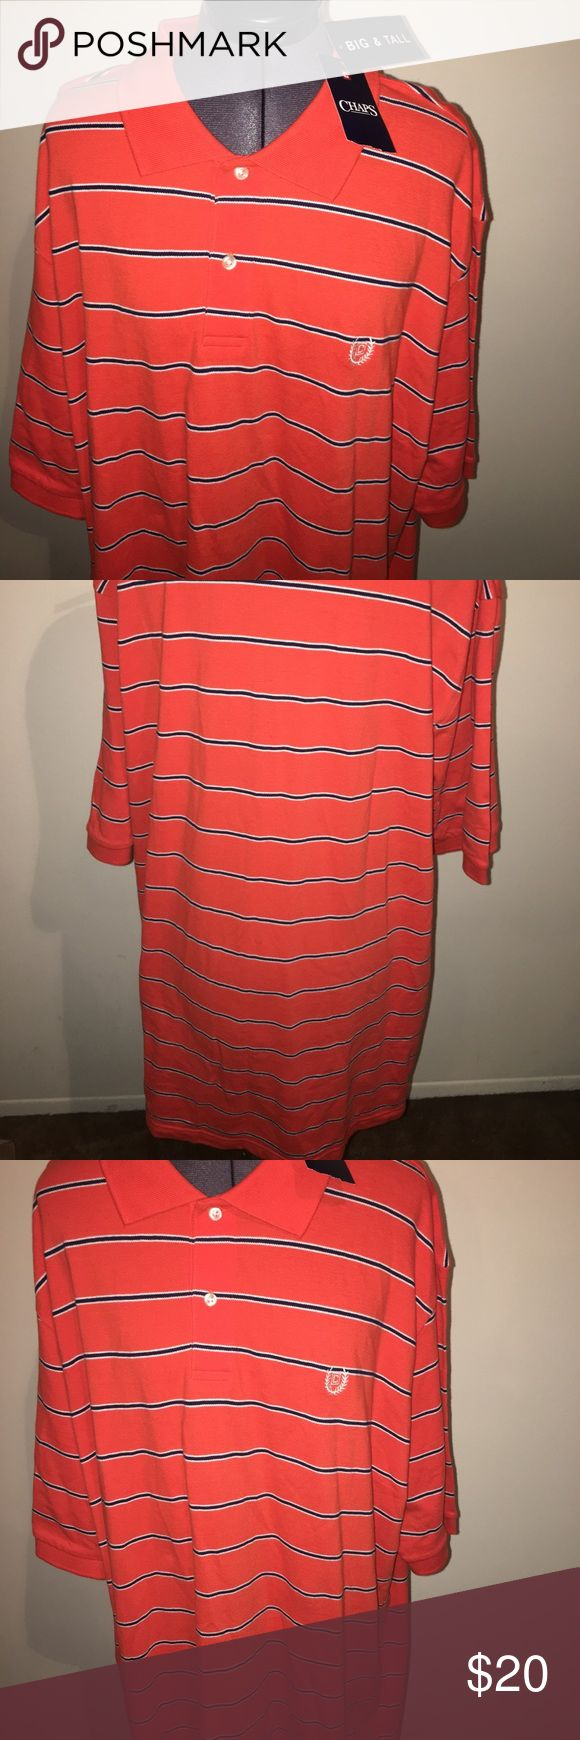 New men's orange striped Chaps shirt 2XLT Tall 🍊 Hey guys, in this listing you are purchasing a brand new men's orange striped short sleeve shirt by Chaps. The size is a 2XL Tall and it can be yours today! 🍊 Chaps Shirts Casual Button Down Shirts